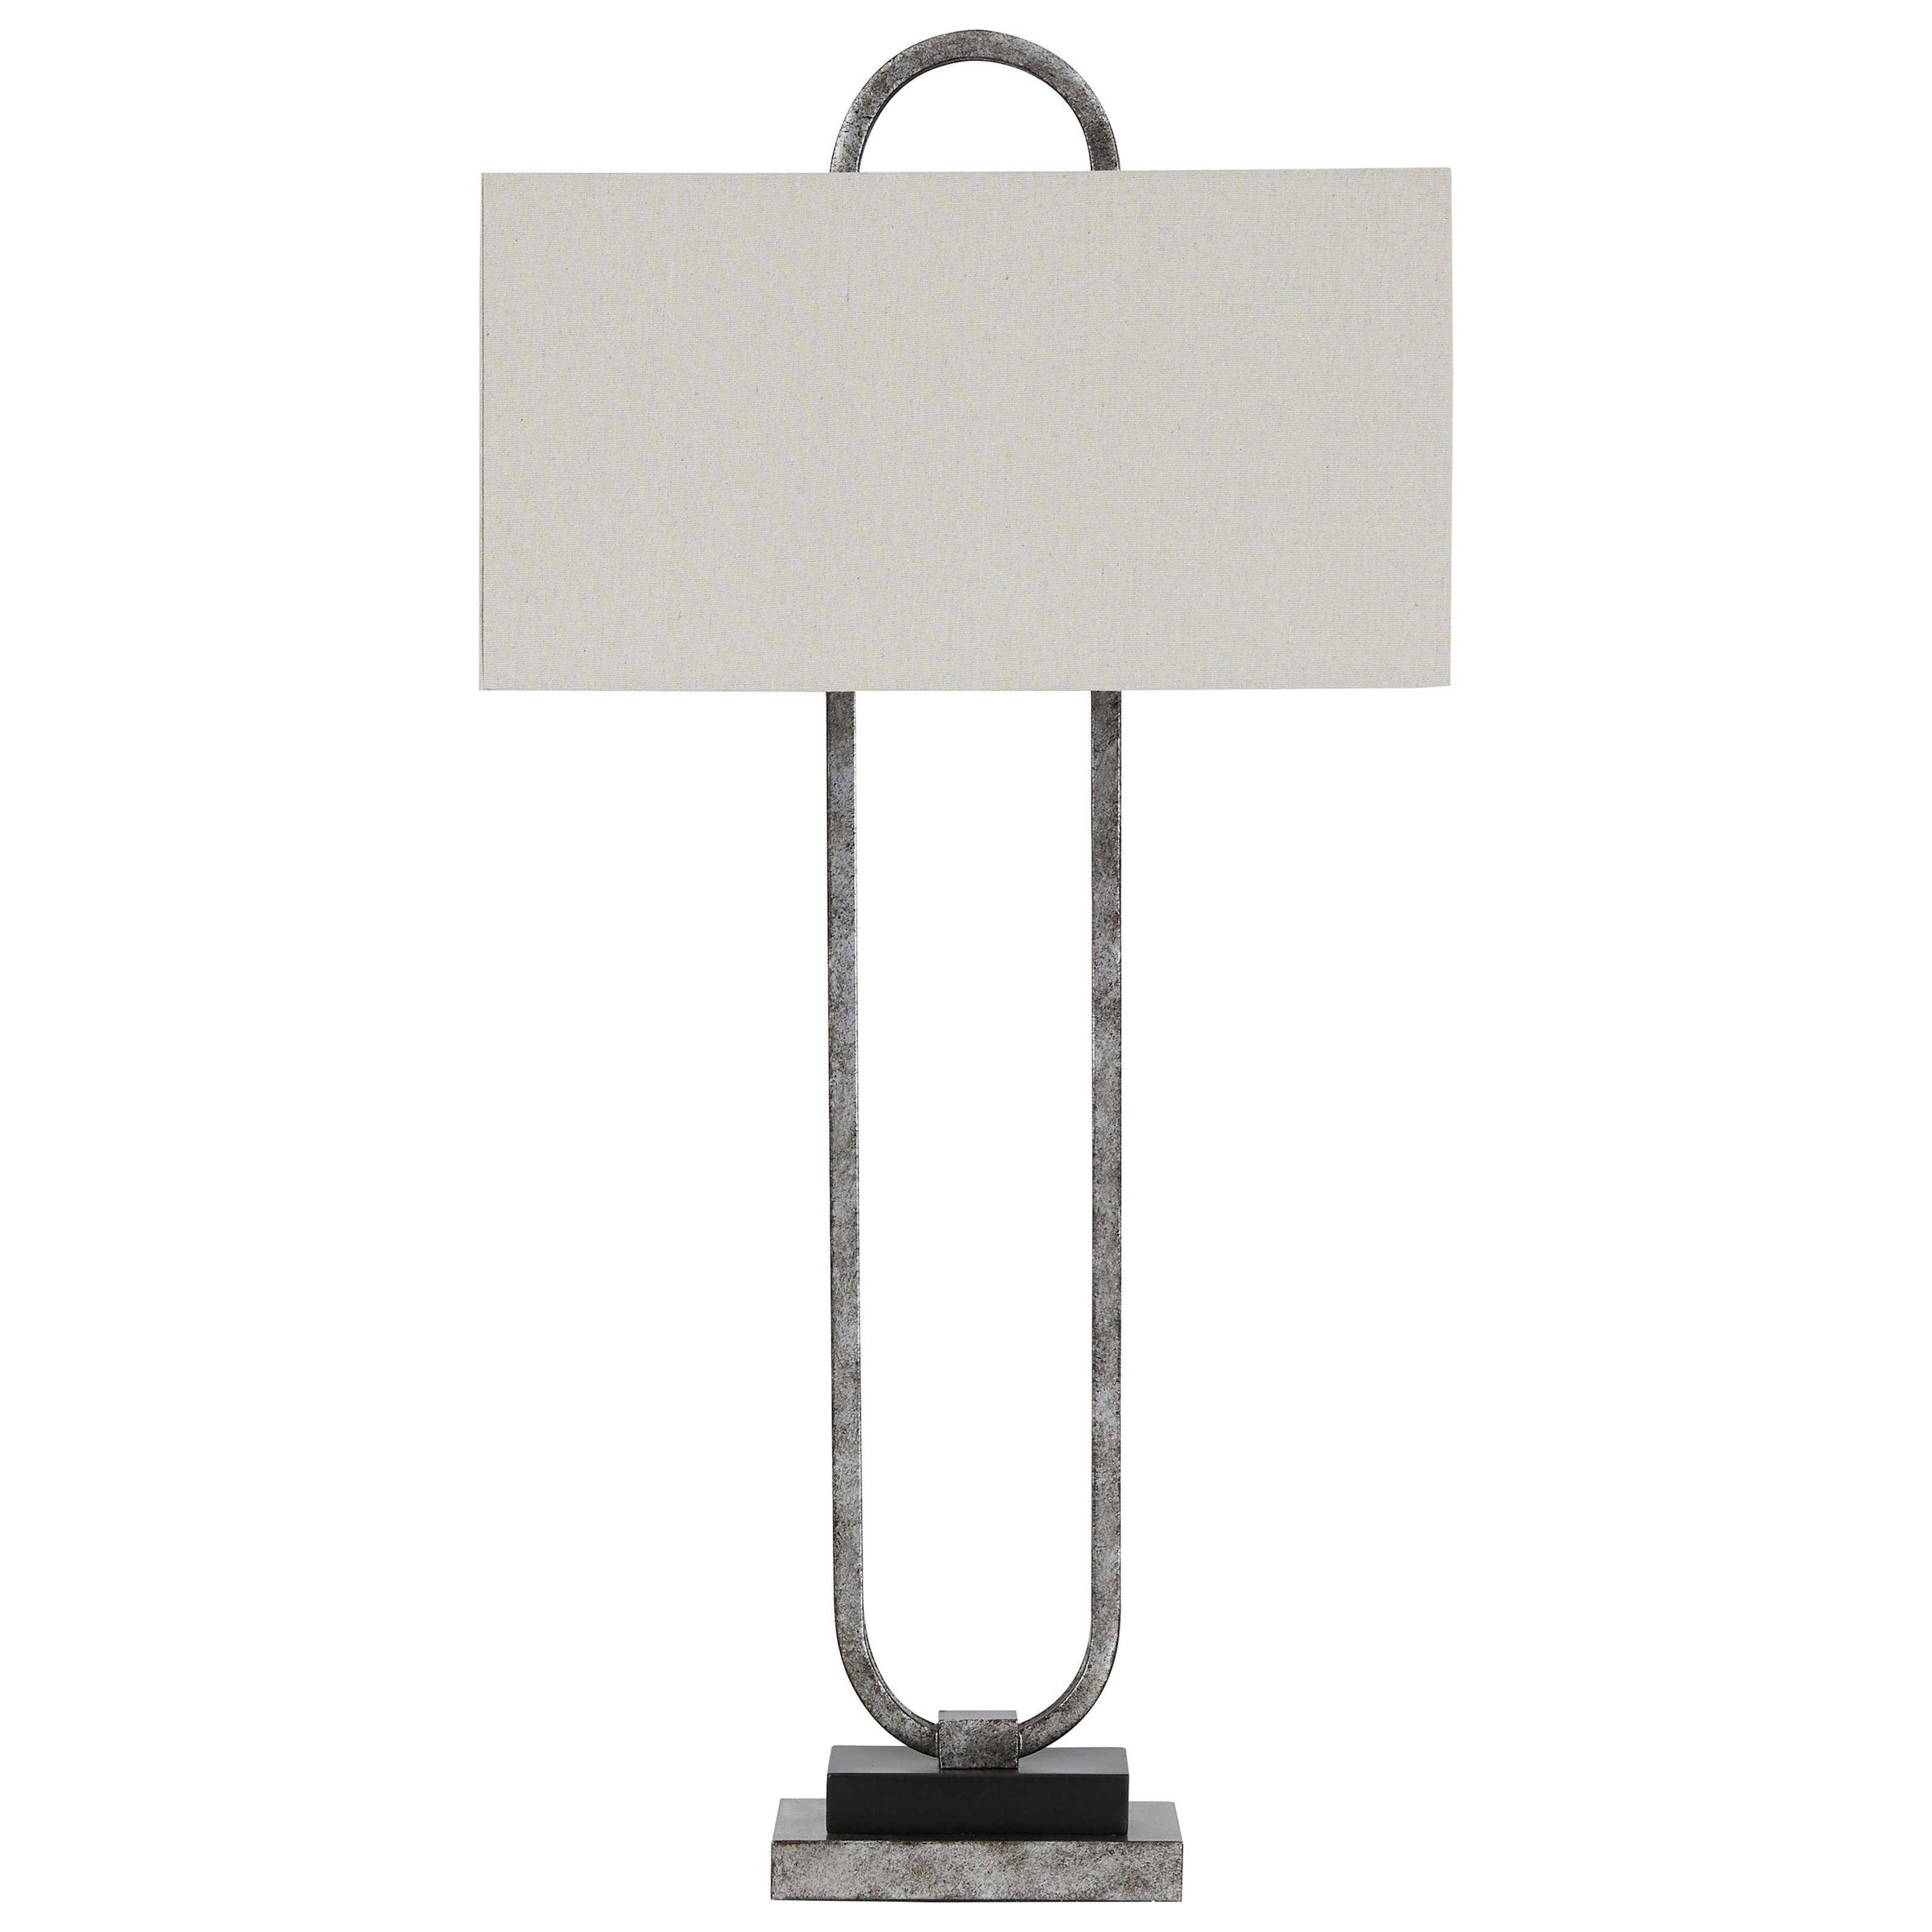 Lamps - Contemporary Bennish Antique Silver Metal Table Lamp by Signature Design by Ashley at Miller Waldrop Furniture and Decor